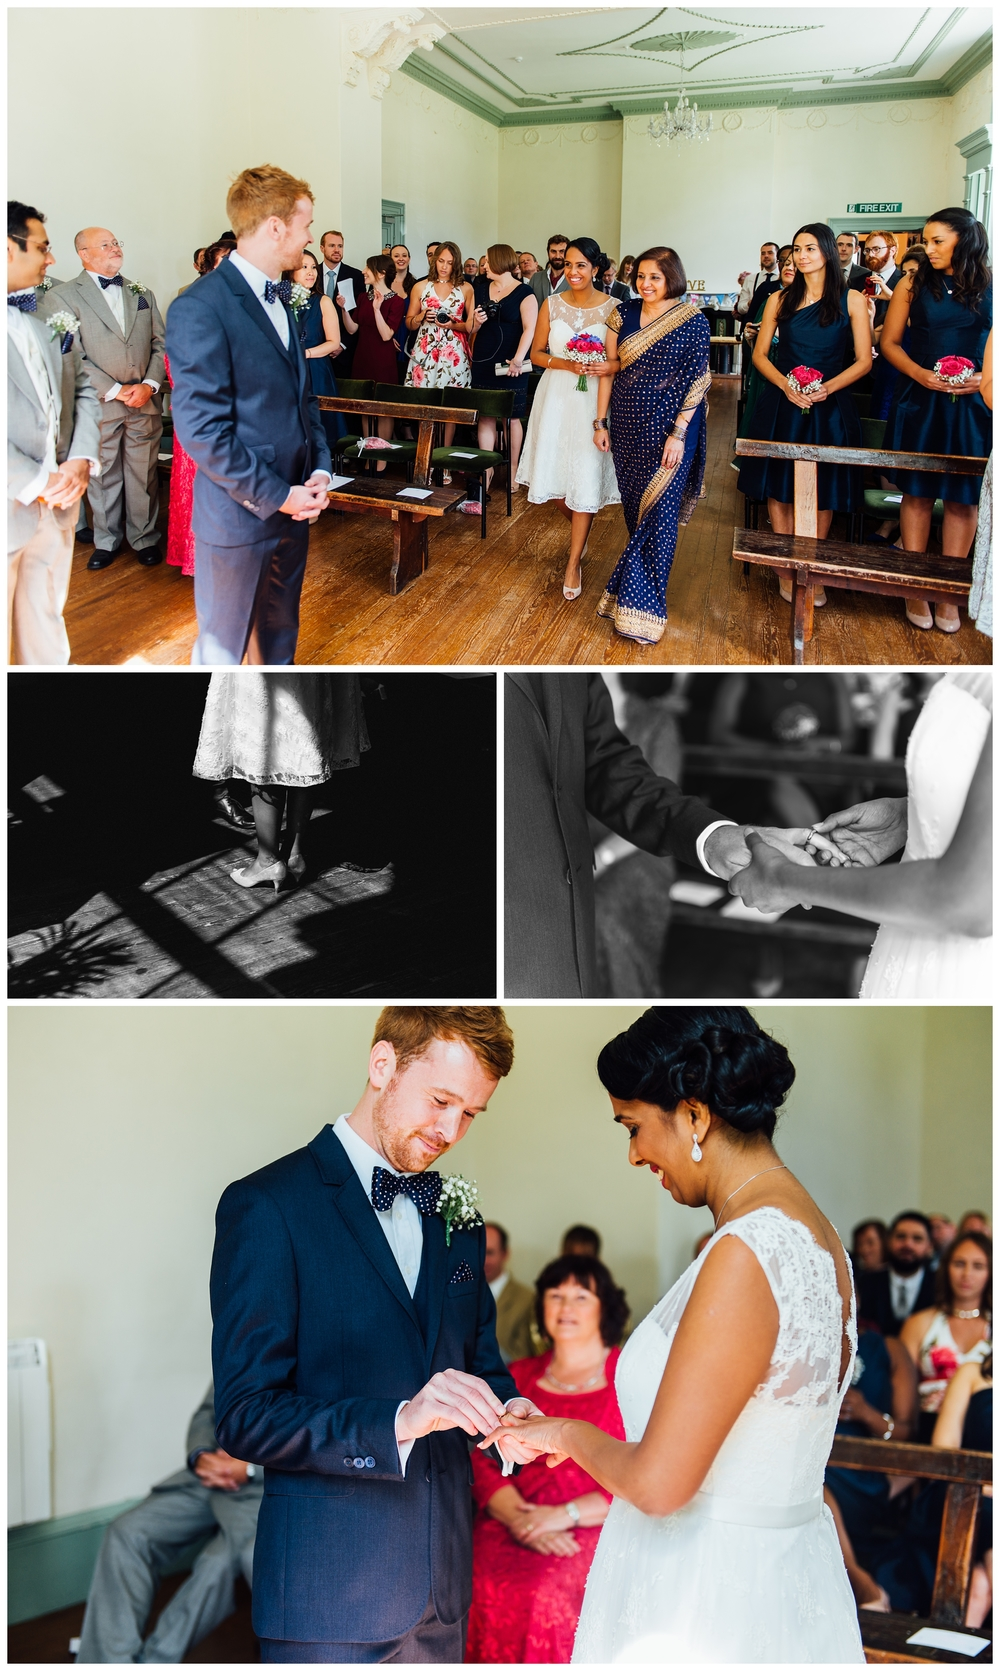 Rich&Dhikshana_Lupton_House_Devon_Hindu_English_Fushion_Wedding_0023.jpg